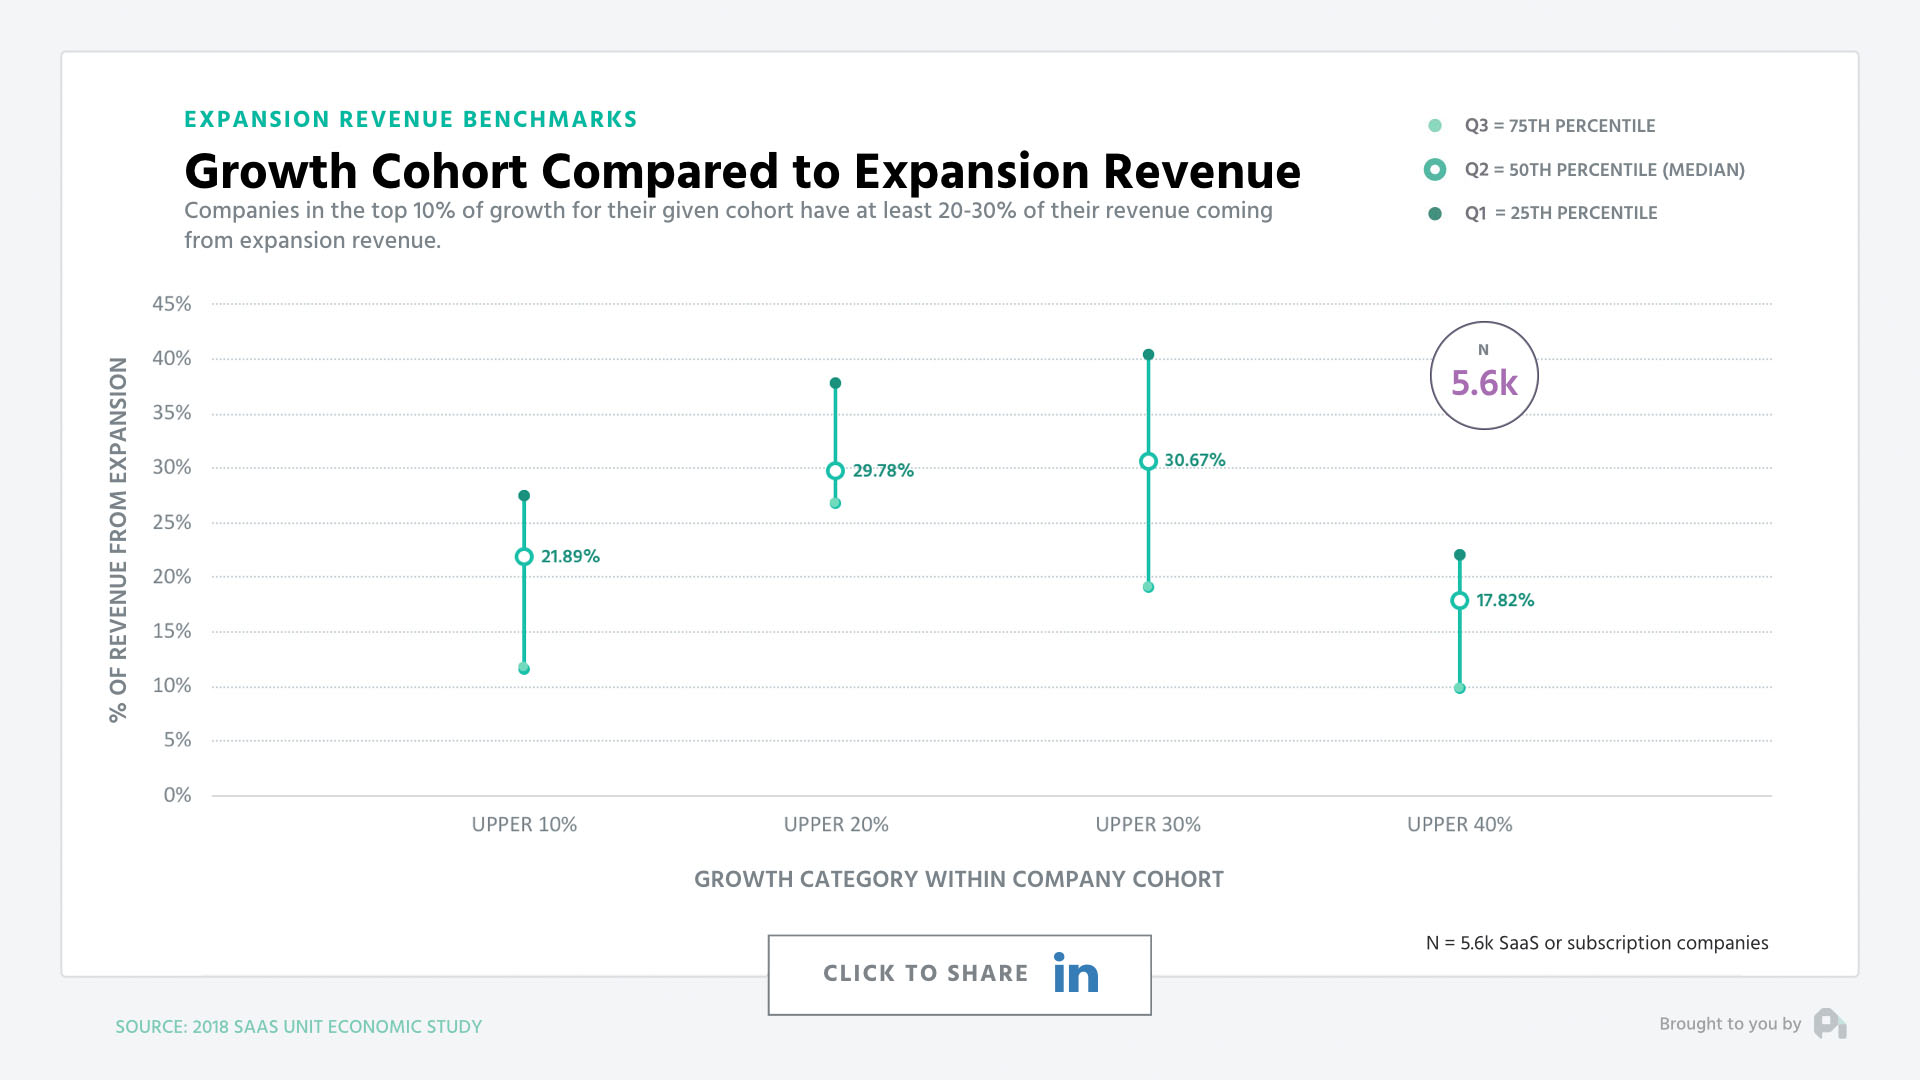 Growth Cohort Compared to Expansion Revenue